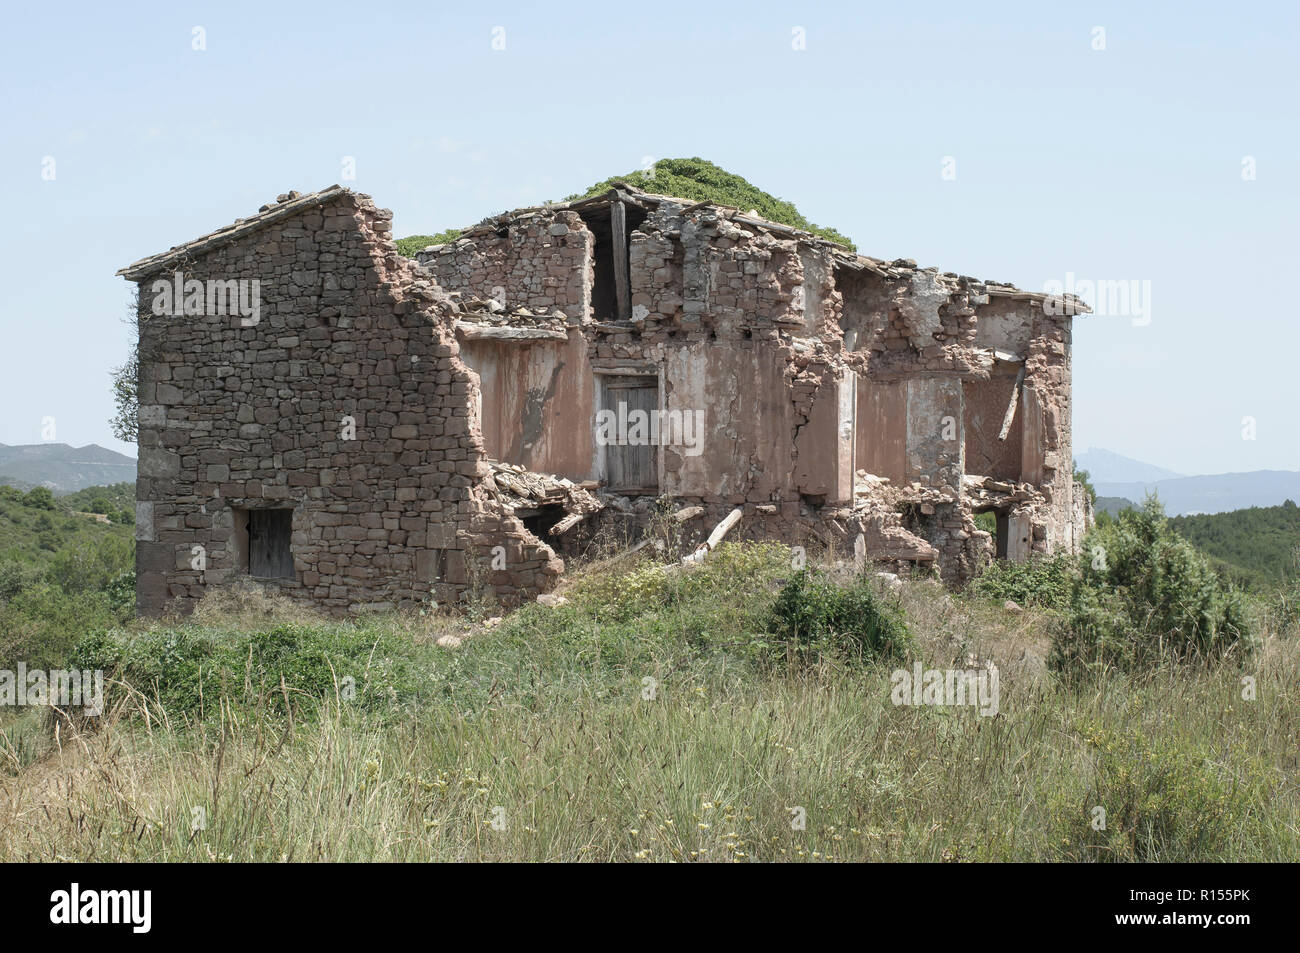 Typical Catalan farmhouse abandoned in ruins - Stock Image